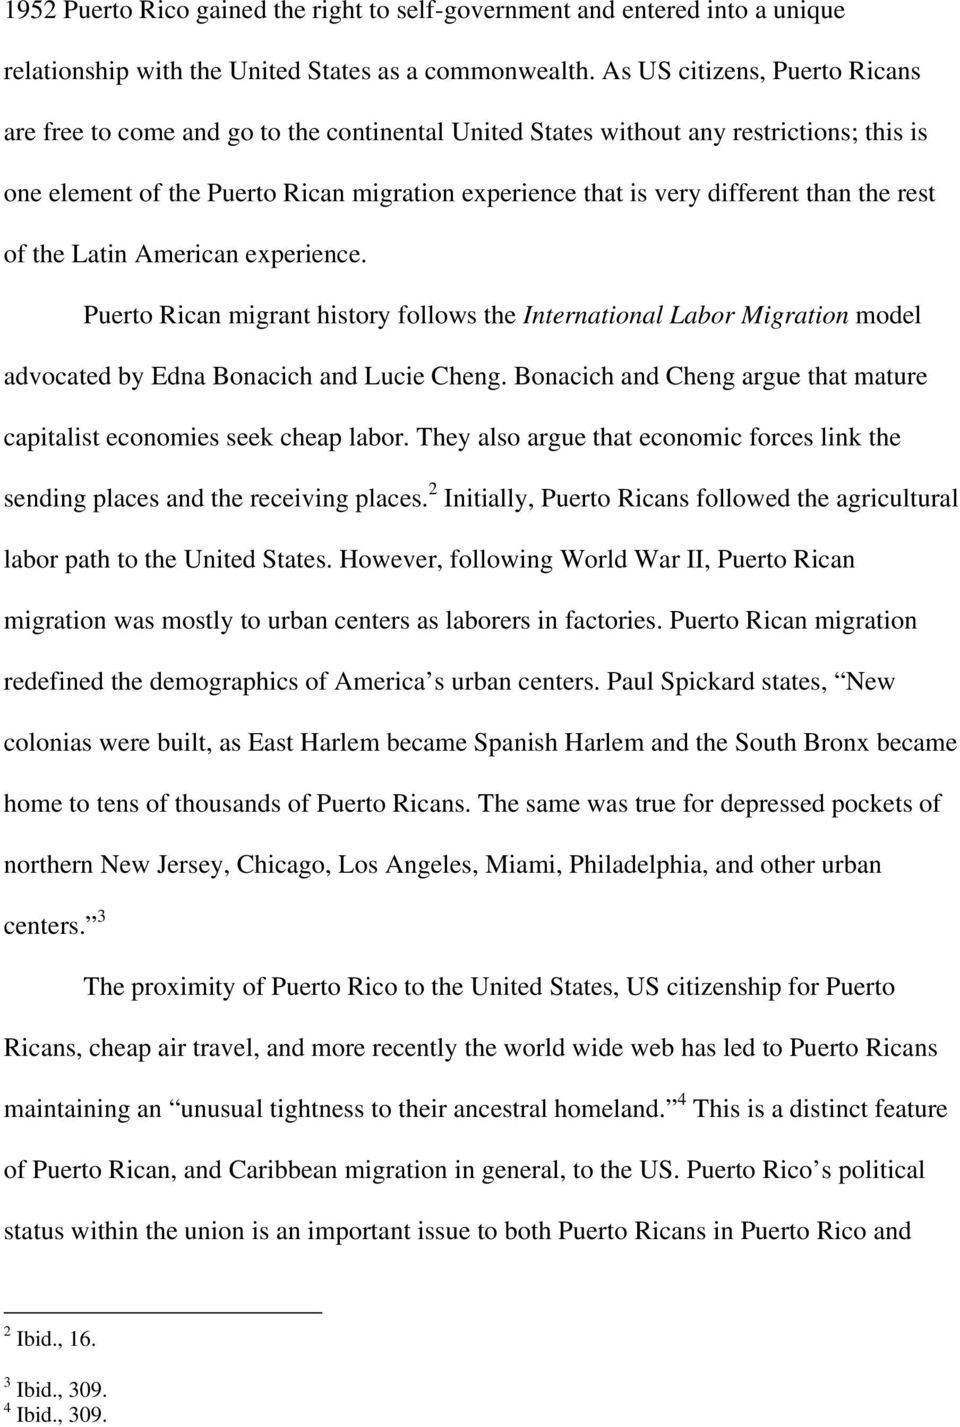 than the rest of the Latin American experience. Puerto Rican migrant history follows the International Labor Migration model advocated by Edna Bonacich and Lucie Cheng.